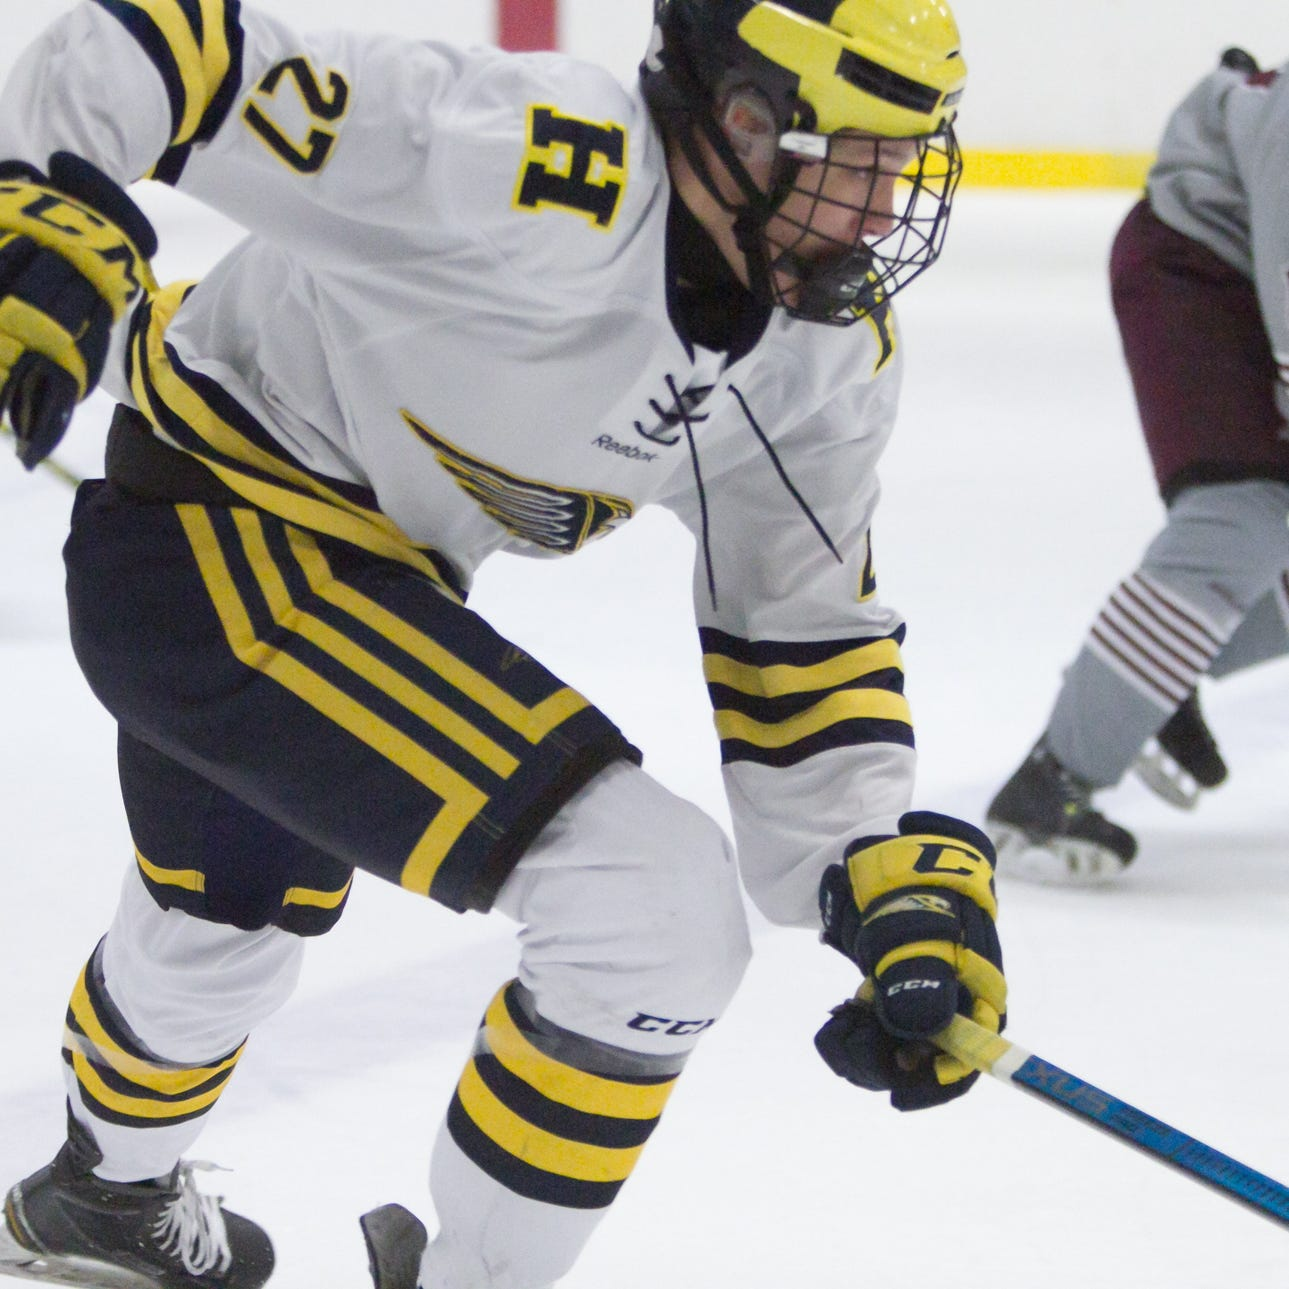 Hartland's new No. 27 scores momentum-altering goal in clash of No. 1 hockey teams